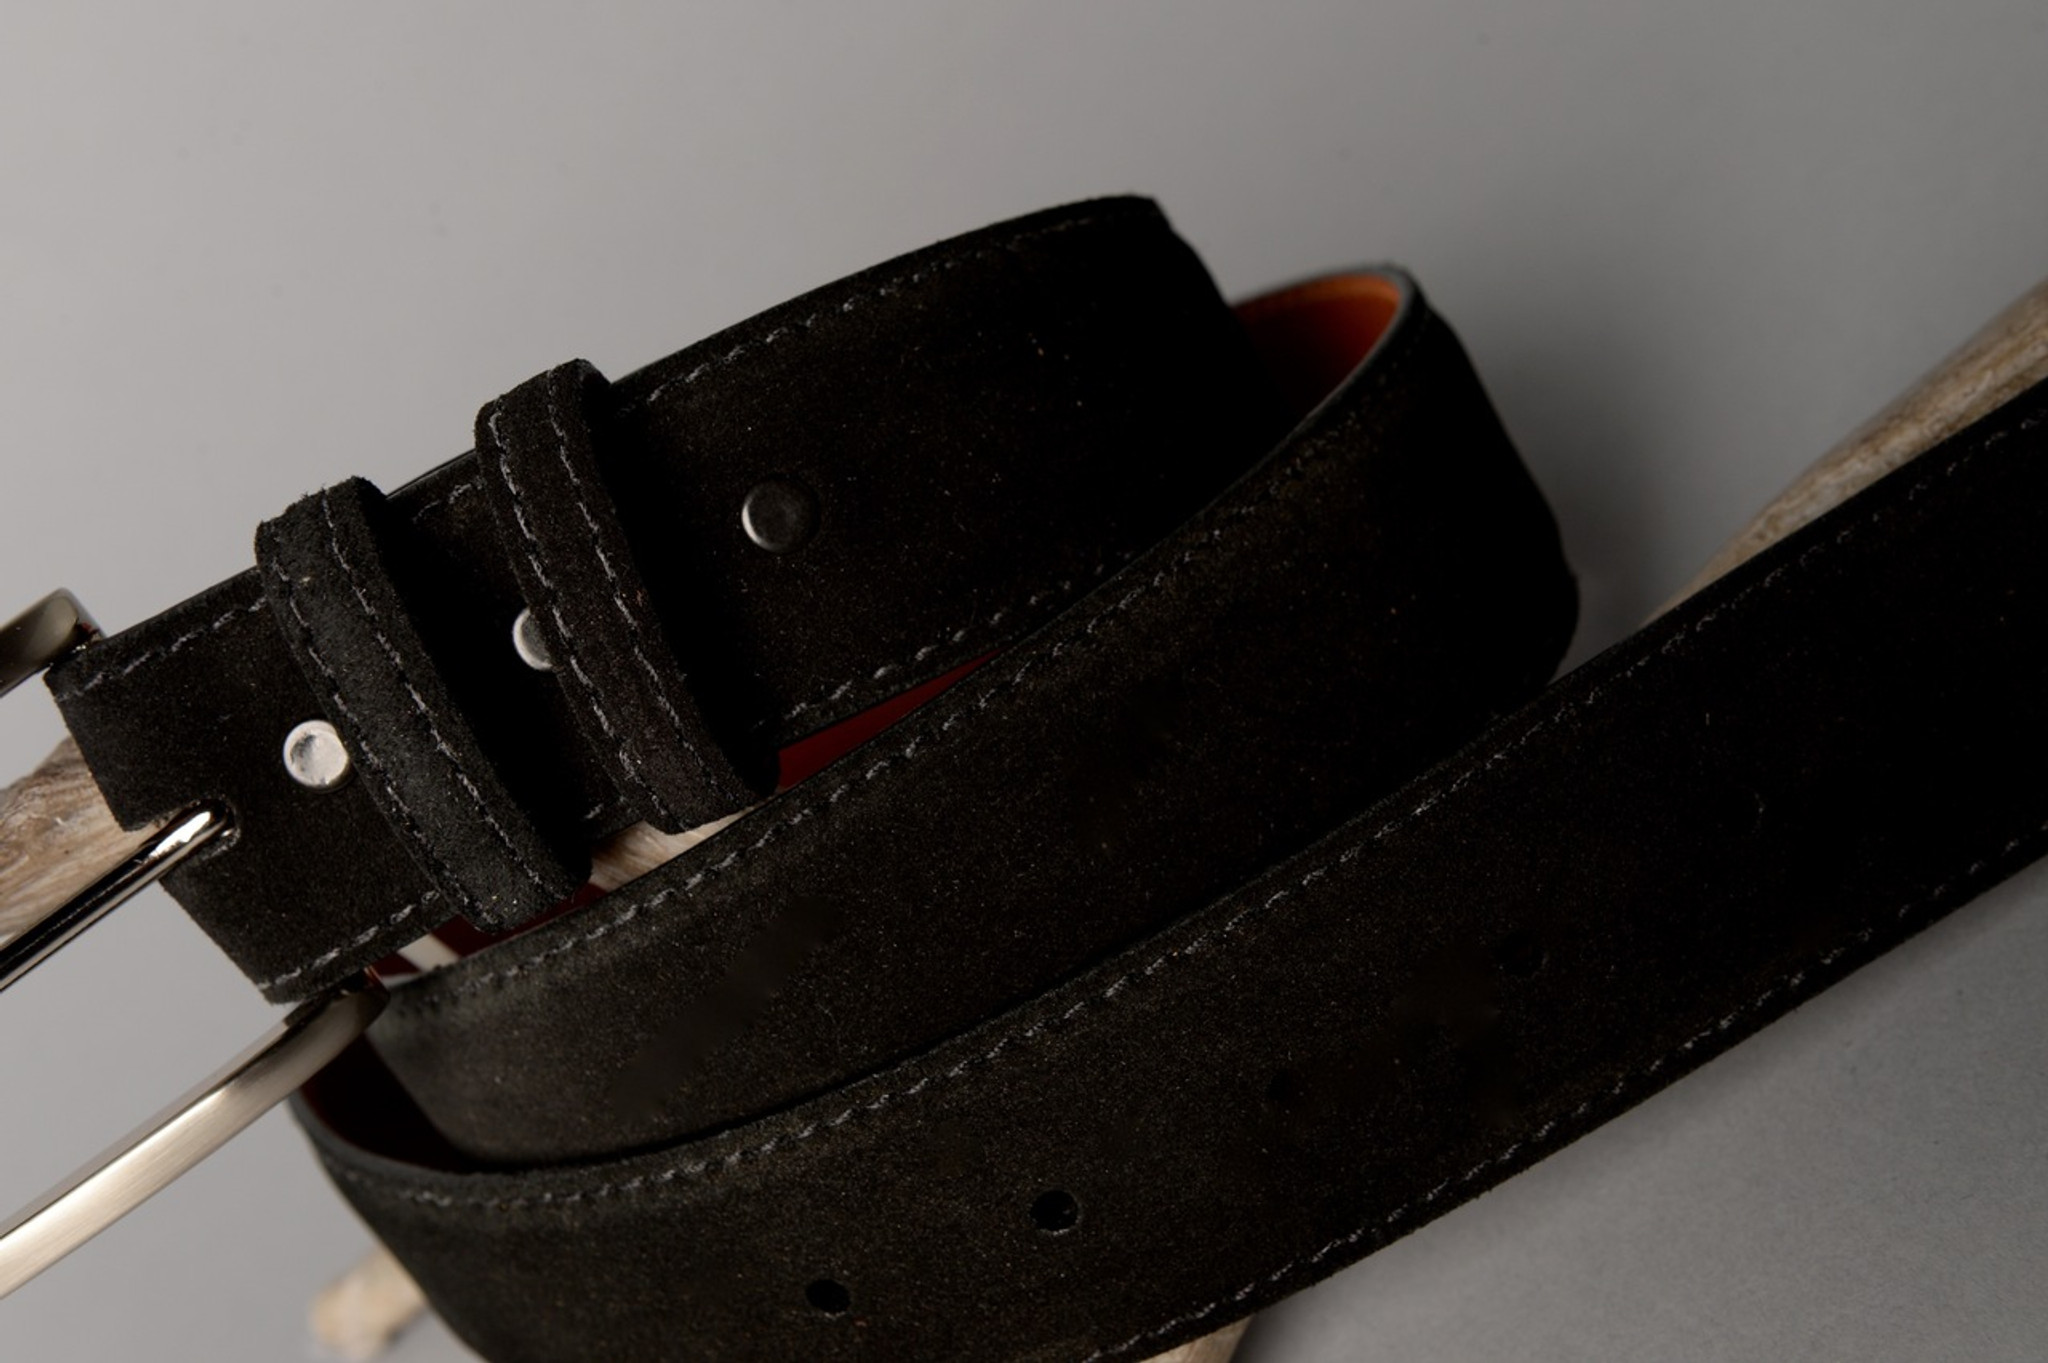 Suede calfskin belt - Black